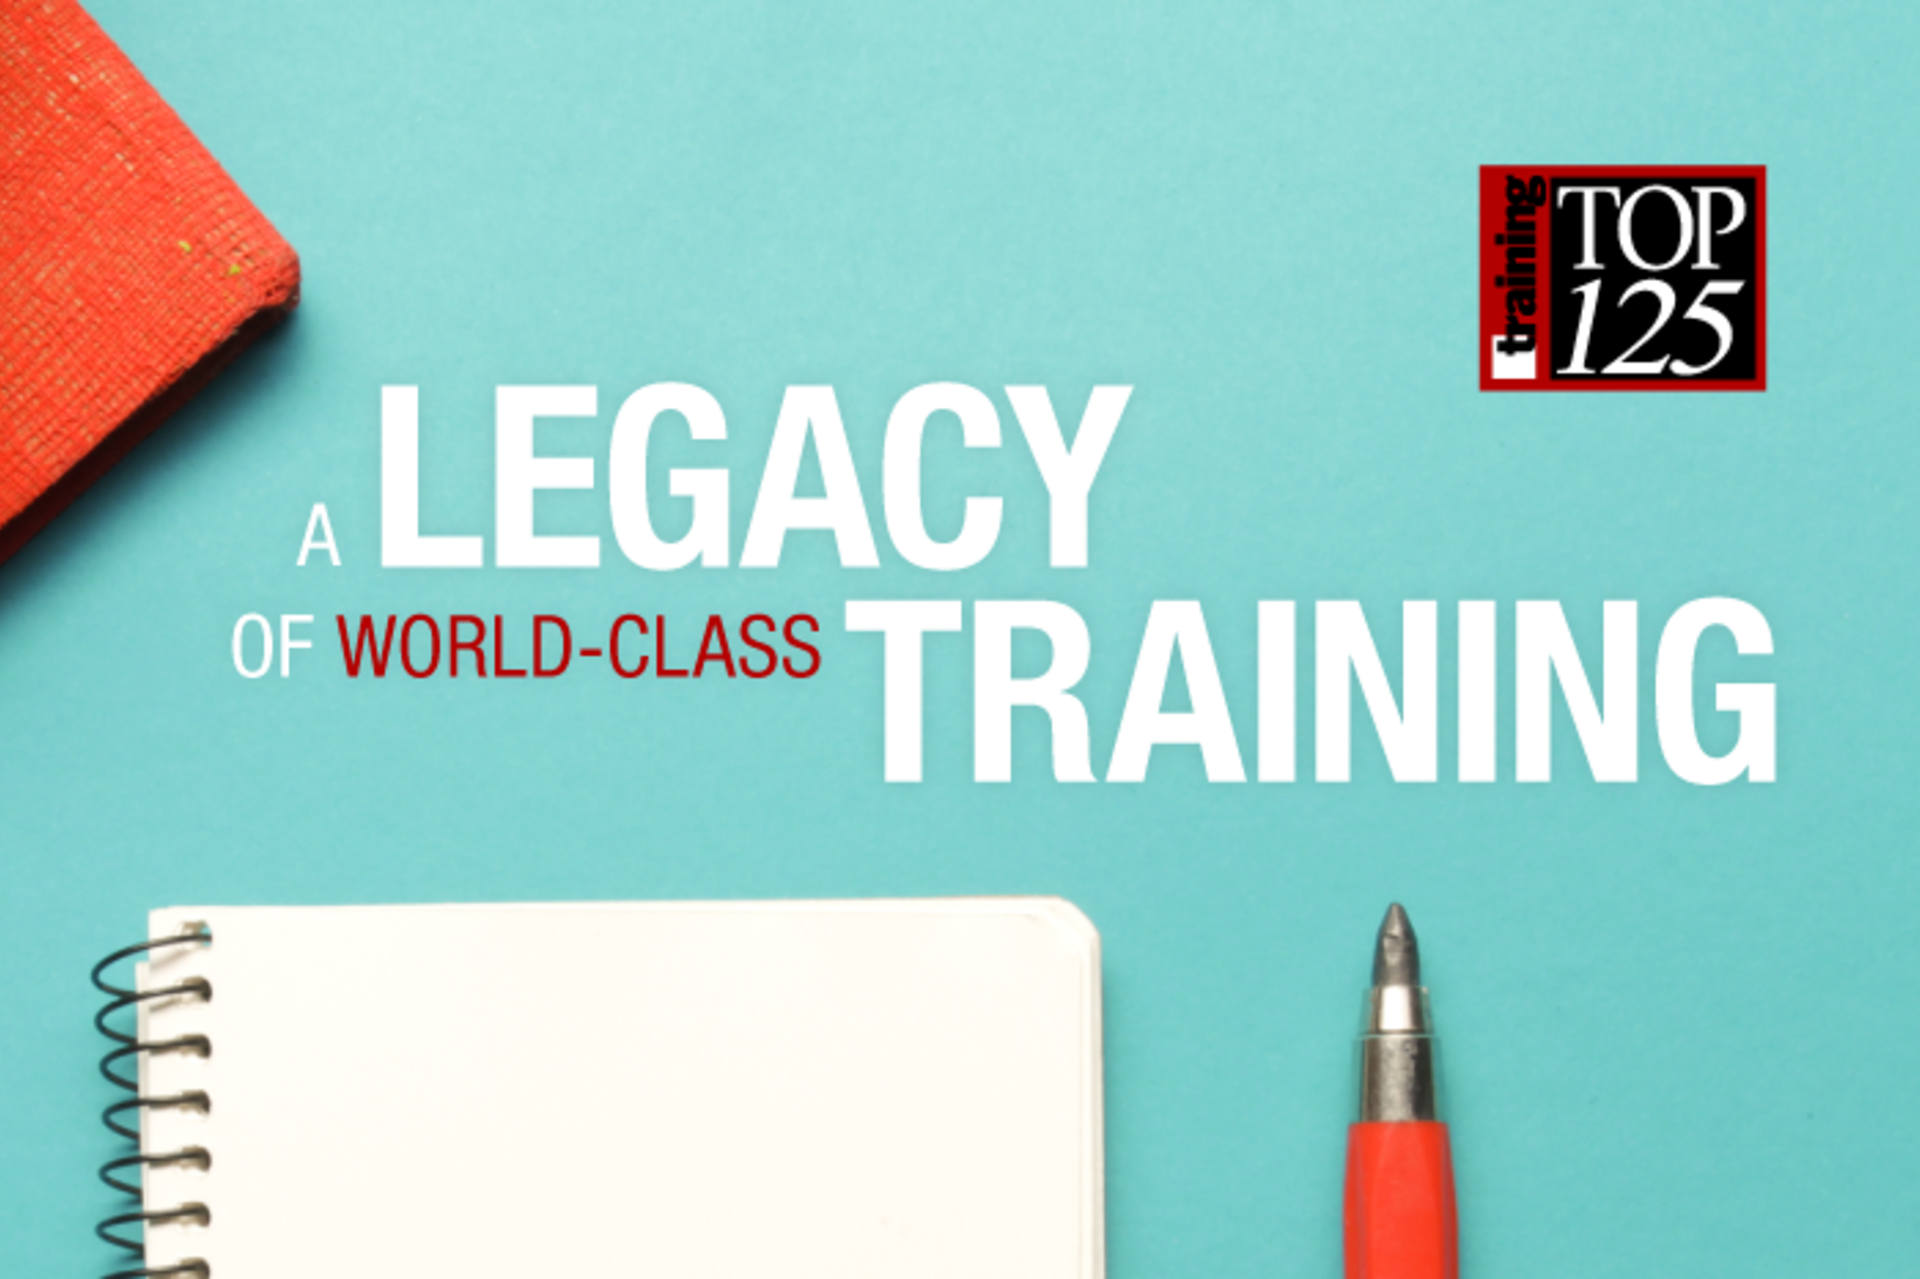 Keller Williams Is Inducted into Training Magazine's Top 10 Hall of Fame